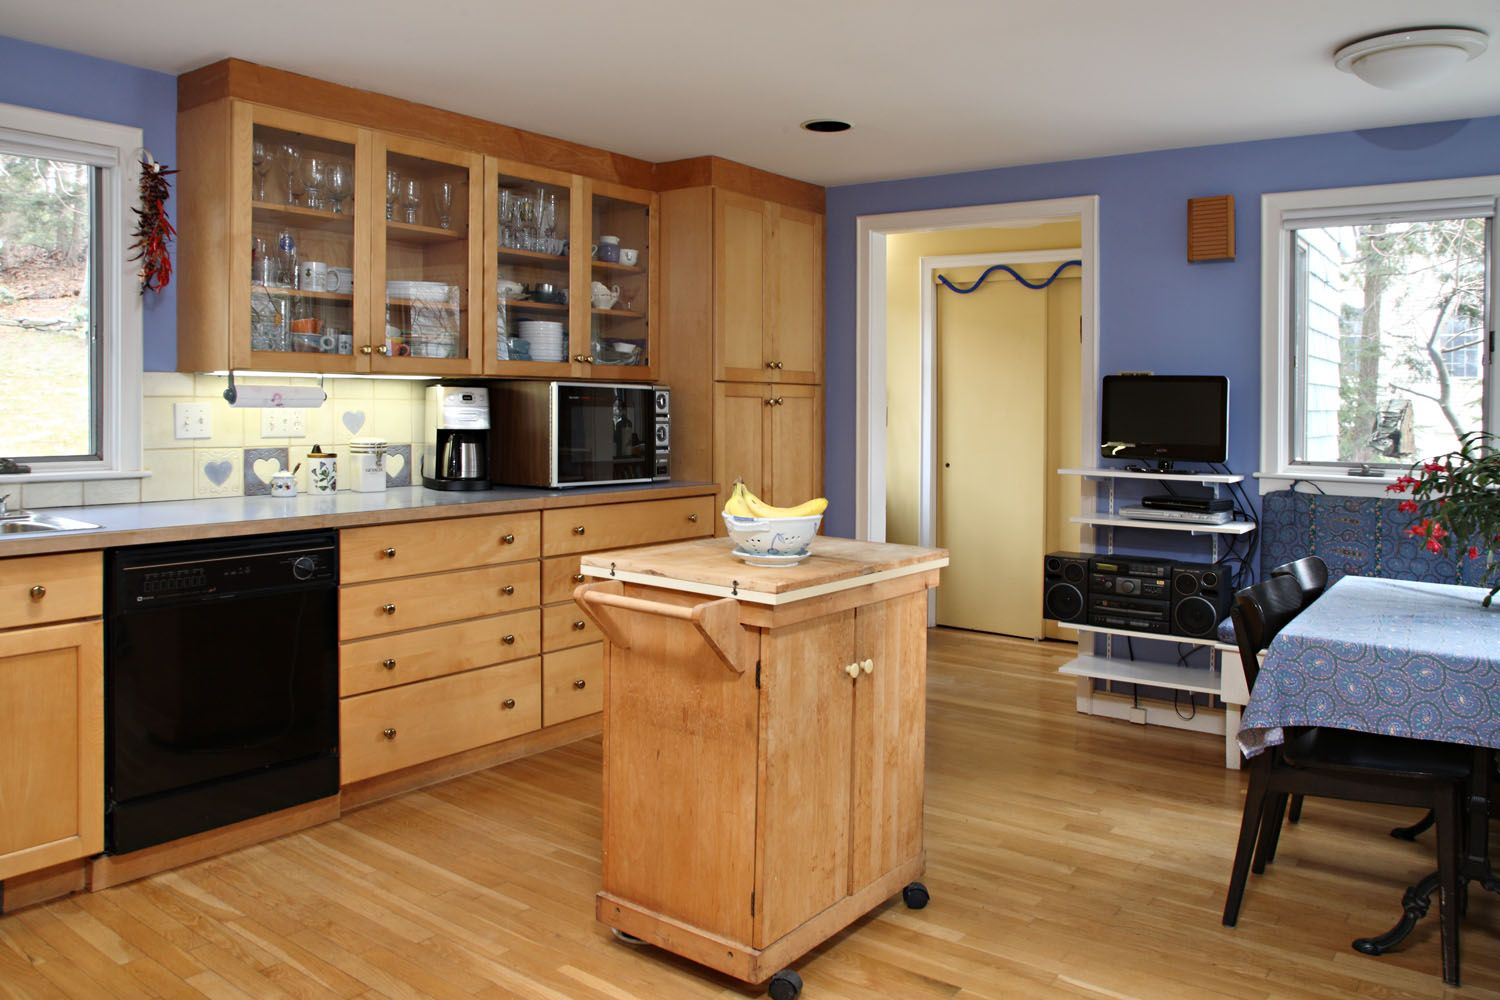 Pin By Gretchen Burman On Mudroom And Garage Kitchen Wall Cabinets Best Kitchen Cabinets Wood Kitchen Cabinets